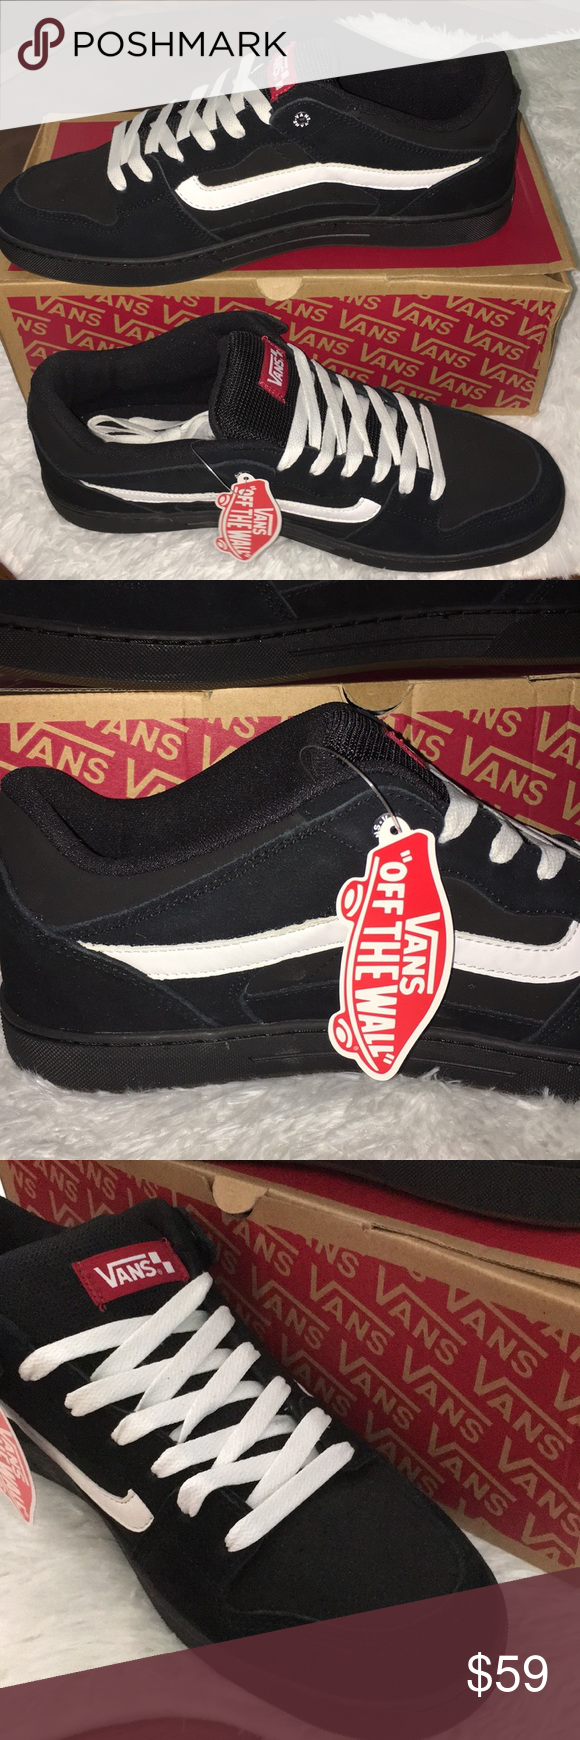 02a2abc1cff00 NEW VANS Baxter Black White Gum Skater Shoes 13 This is a pair of NEW in